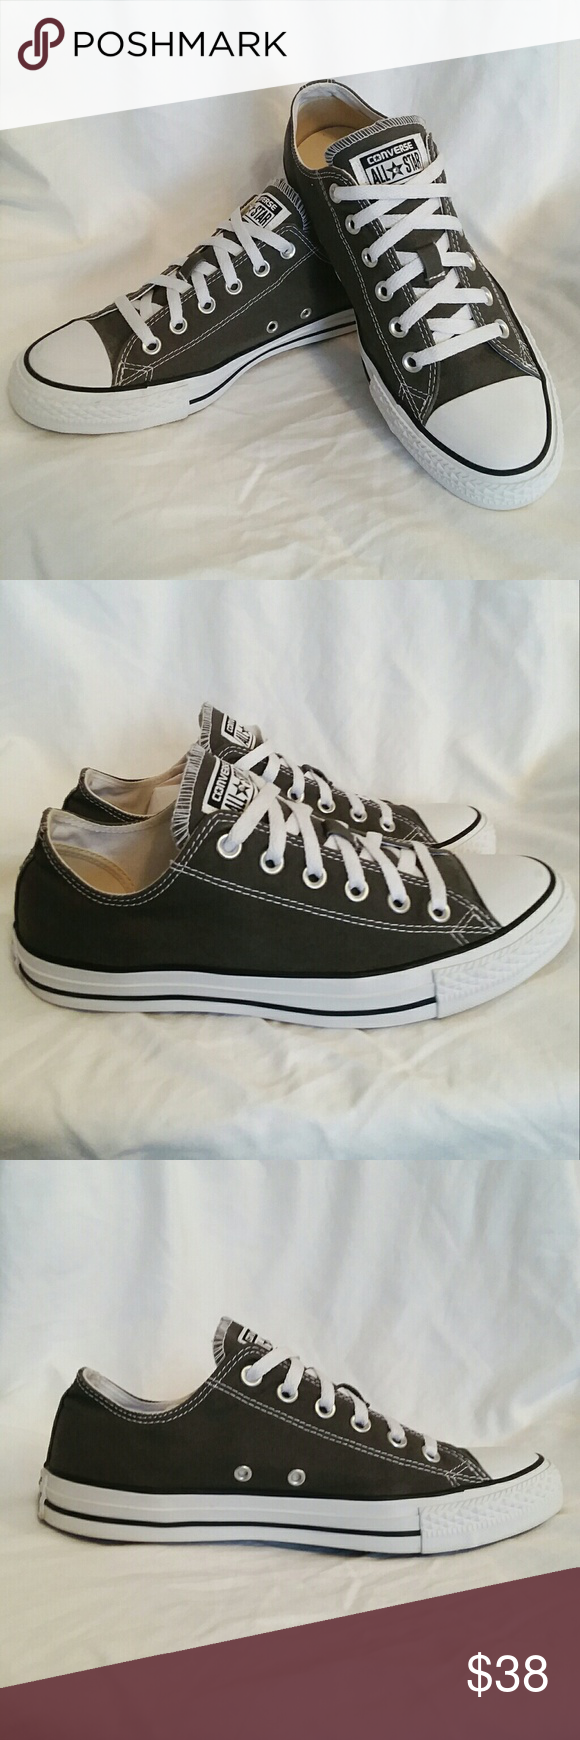 666a97c92efb Grey Converse Chuck Taylor ALL☆Star Shoes EXCELLENT USED CONDITION Custom  Made  Converse Chuck